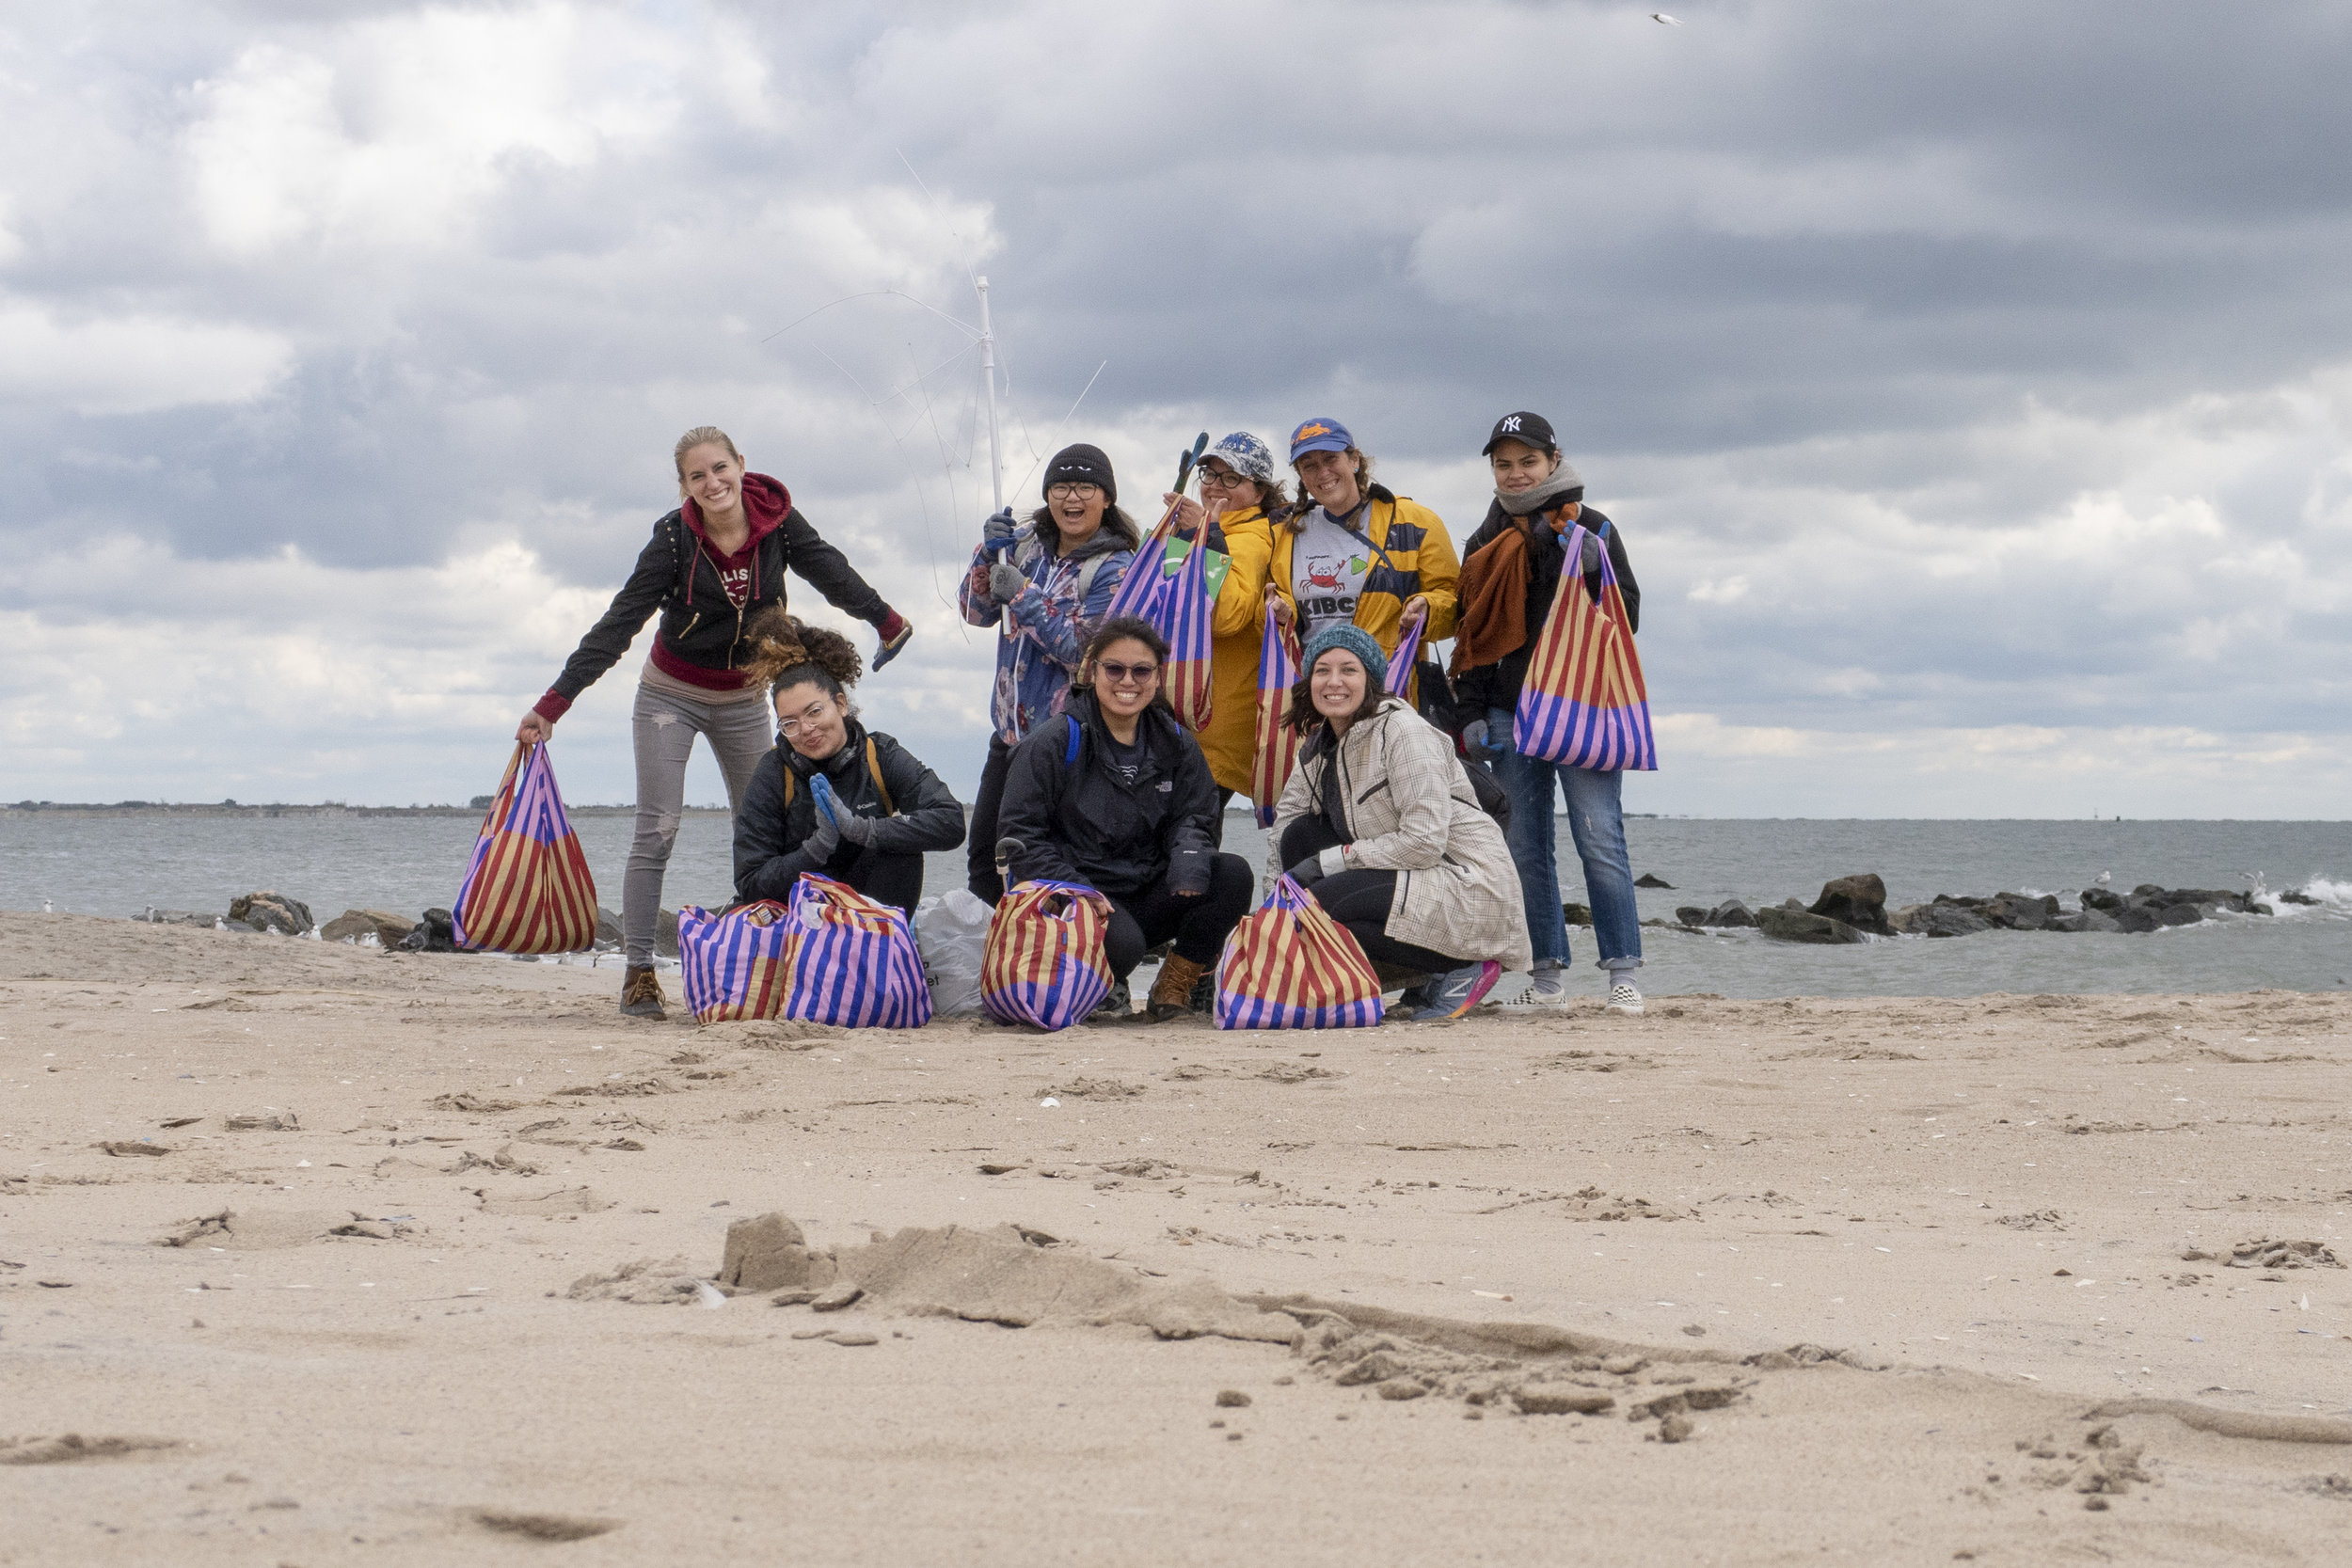 amy_chen_design_coney_island_beach_clean_up_crew_horizontal.jpg